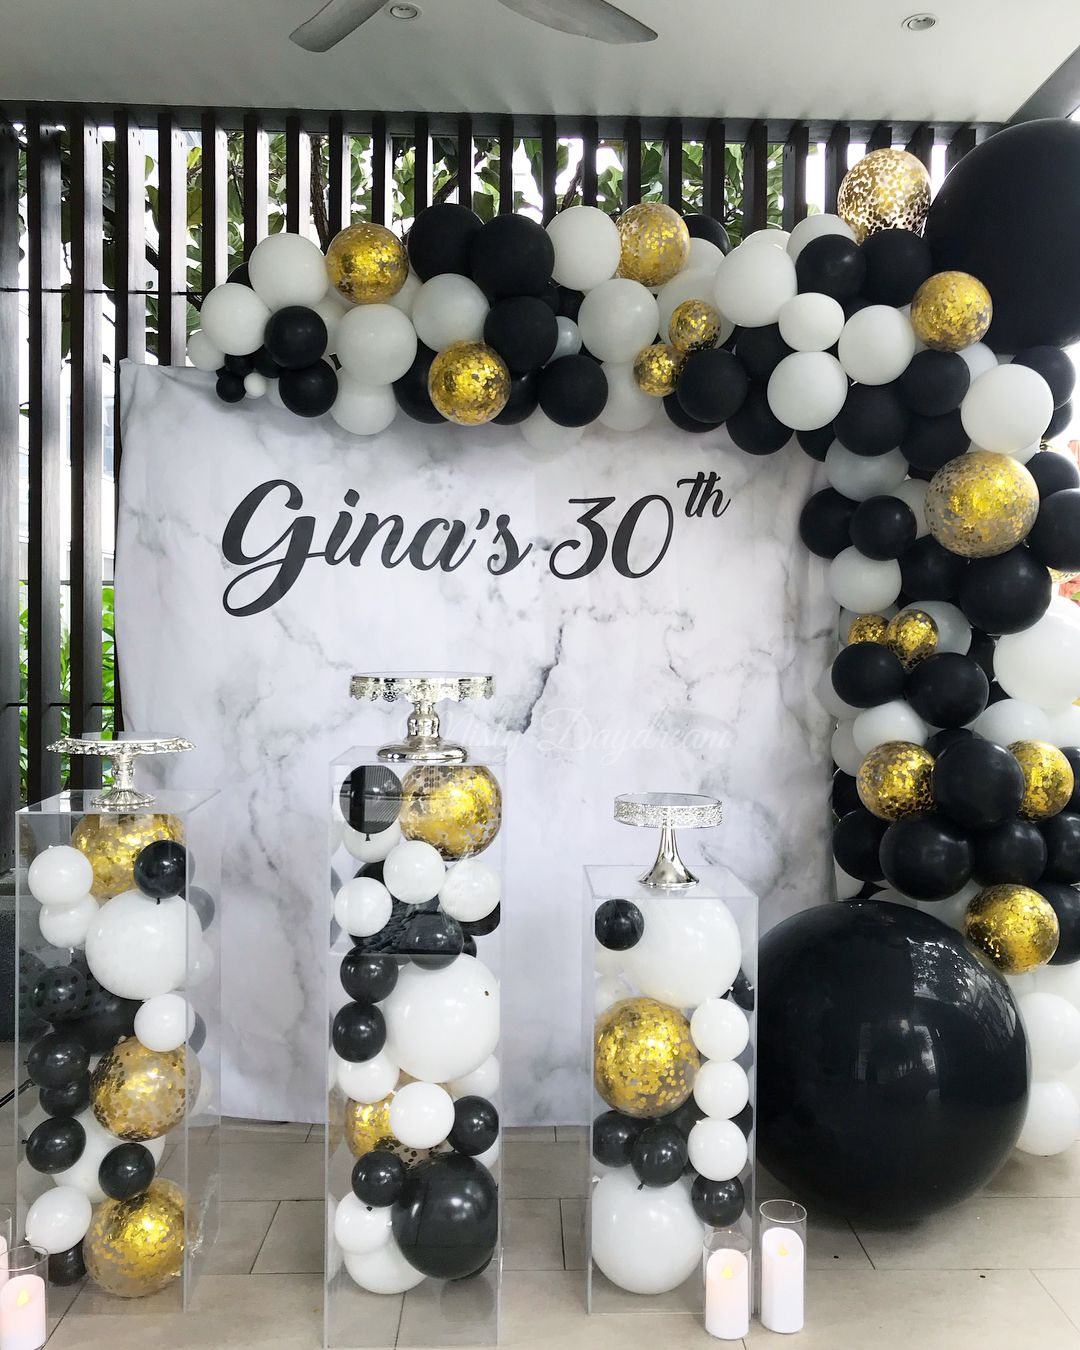 Marble Backdrop Organic Balloons Garlands In Black White And Confetti Gold Mini Balloons Fi Black Party Decorations Black And Gold Balloons Black Gold Party